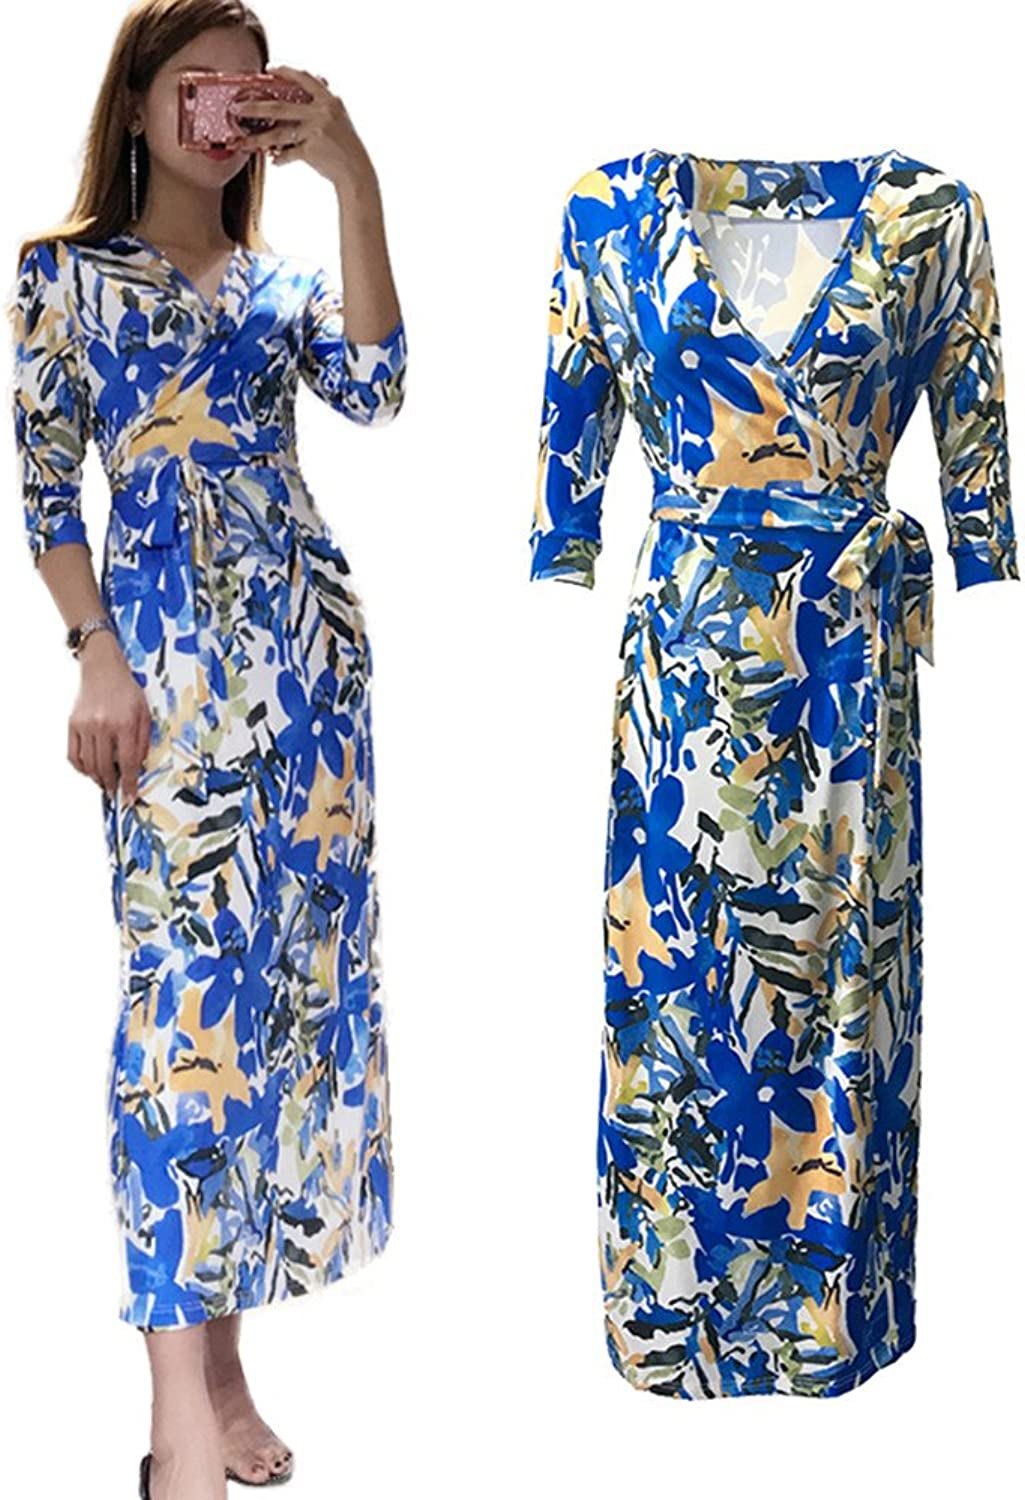 XC DVF Womens 3 4 Sleeve Dresses Summer Vintage Long Maxi Floral Belted Dress